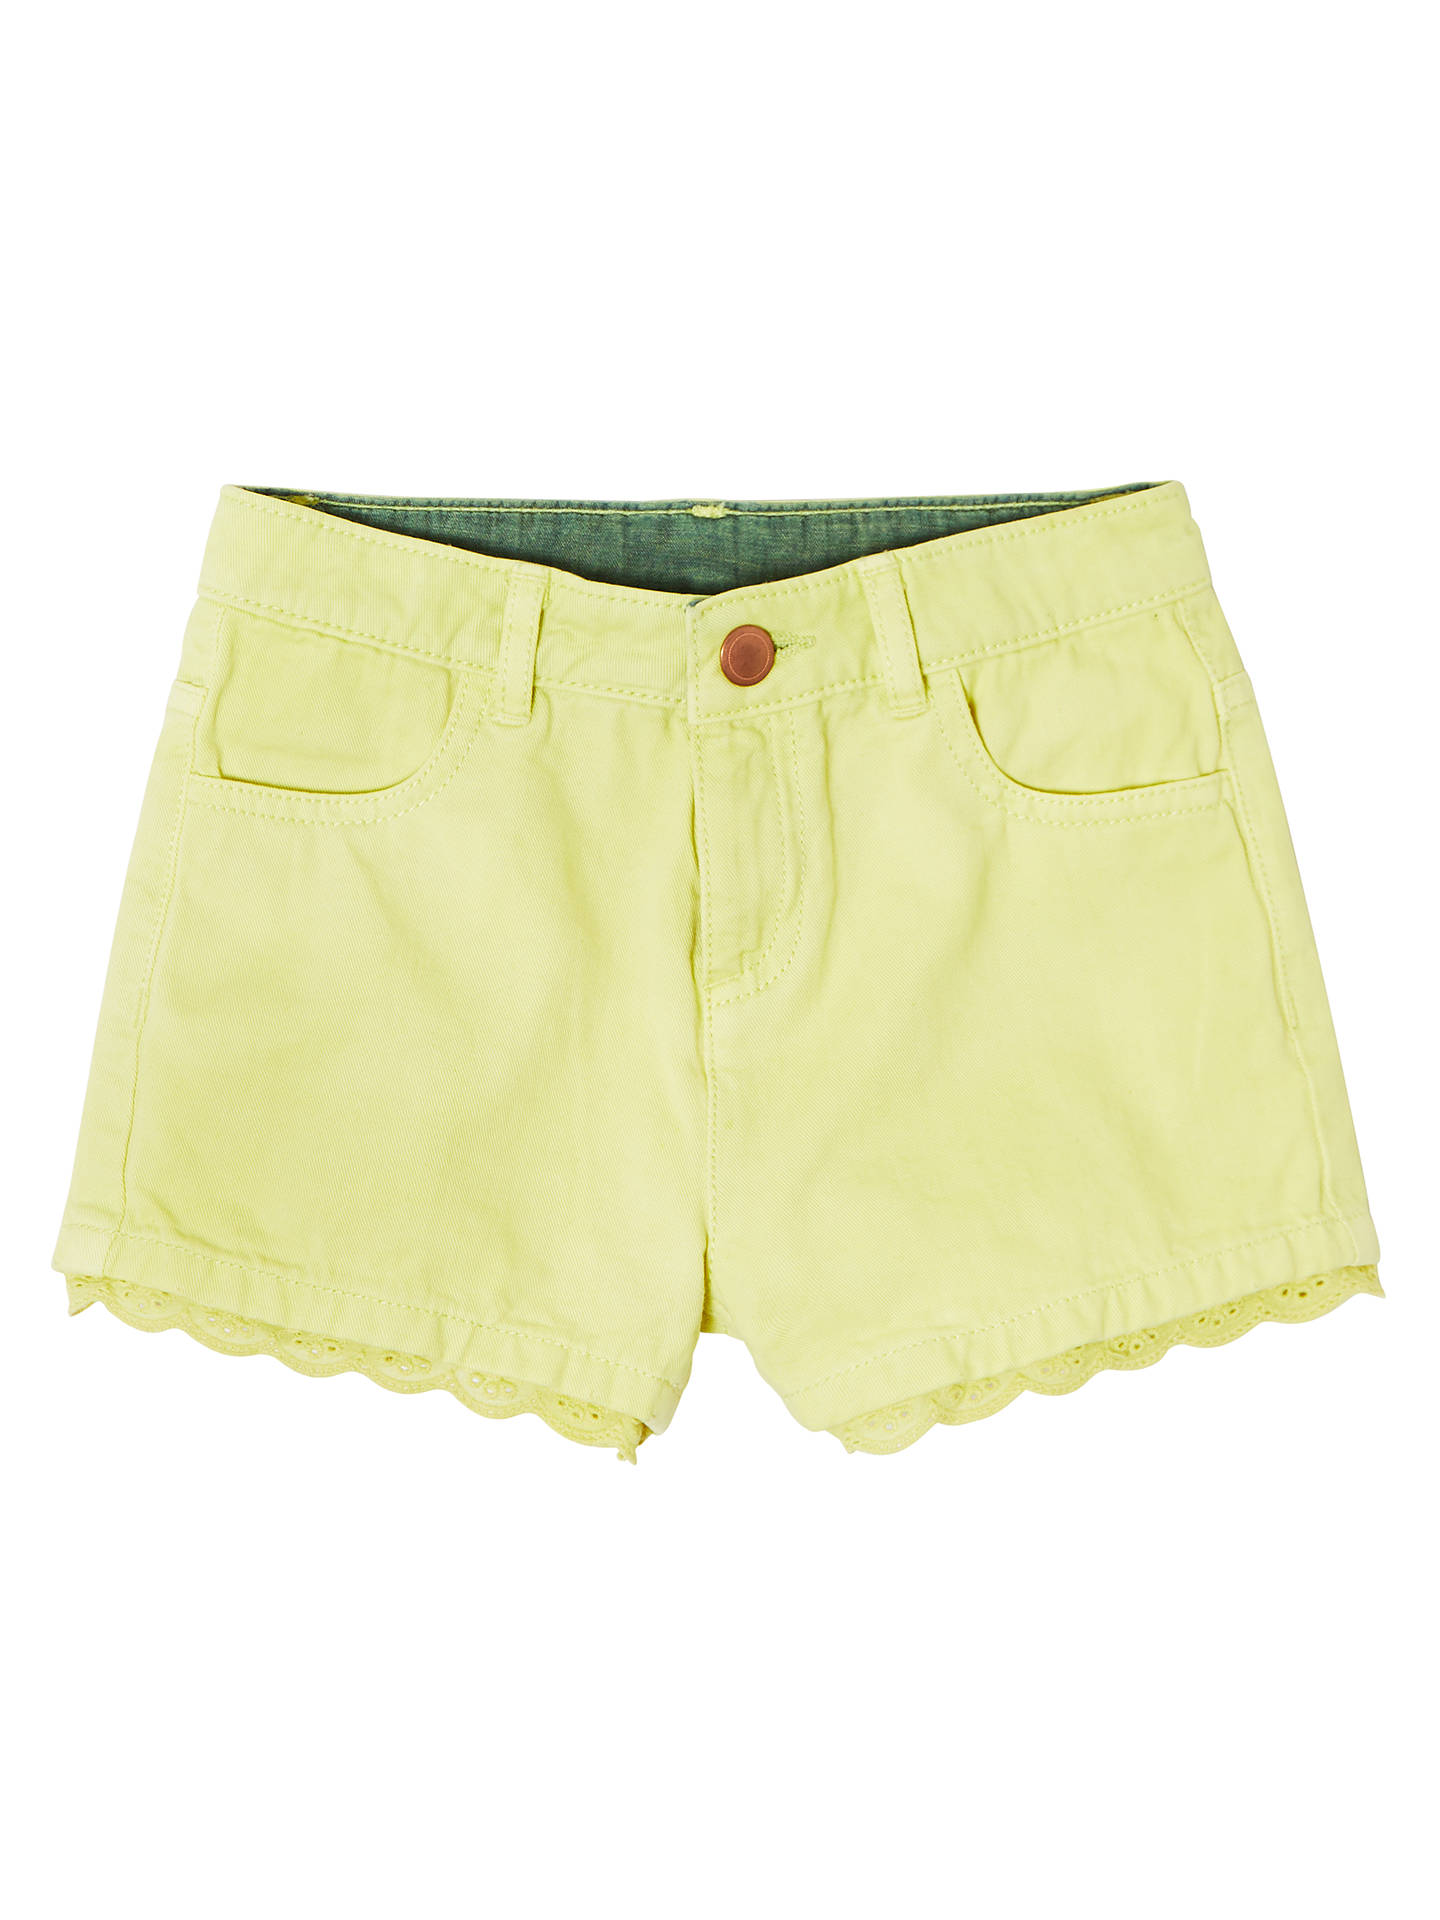 Buy John Lewis & Partners Girls' Twill Shorts, Yellow, 2 years Online at johnlewis.com